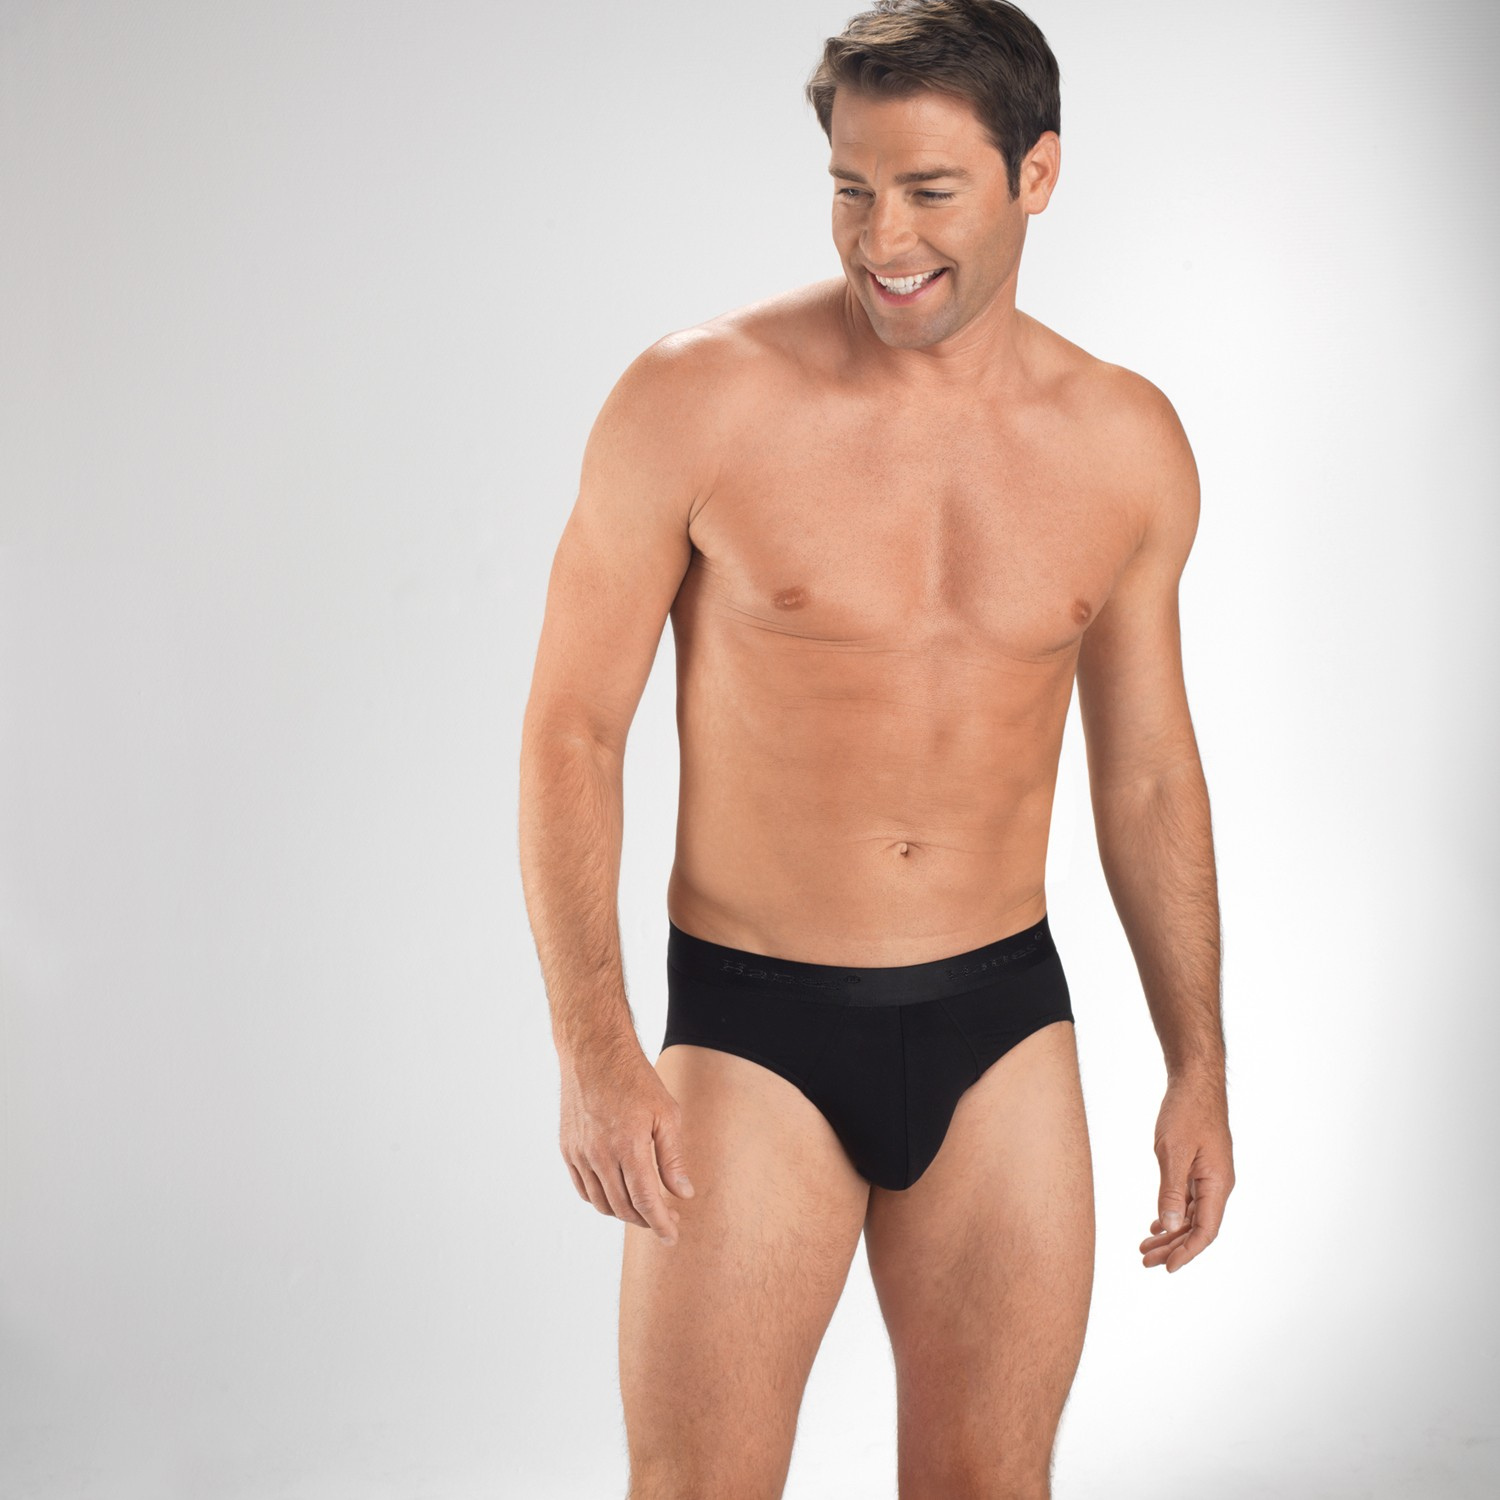 Underwear Men's underwear from Calvin Klein, aussieBum, BOSS Hugo Boss, Baskit, JM, C-IN2 and more. From basic men's briefs to plush cotton boxers and boxer briefs, we offer mens underware in body shaping cuts, % cotton and high tech materials such as micro-fiber for comfortable, clean support.